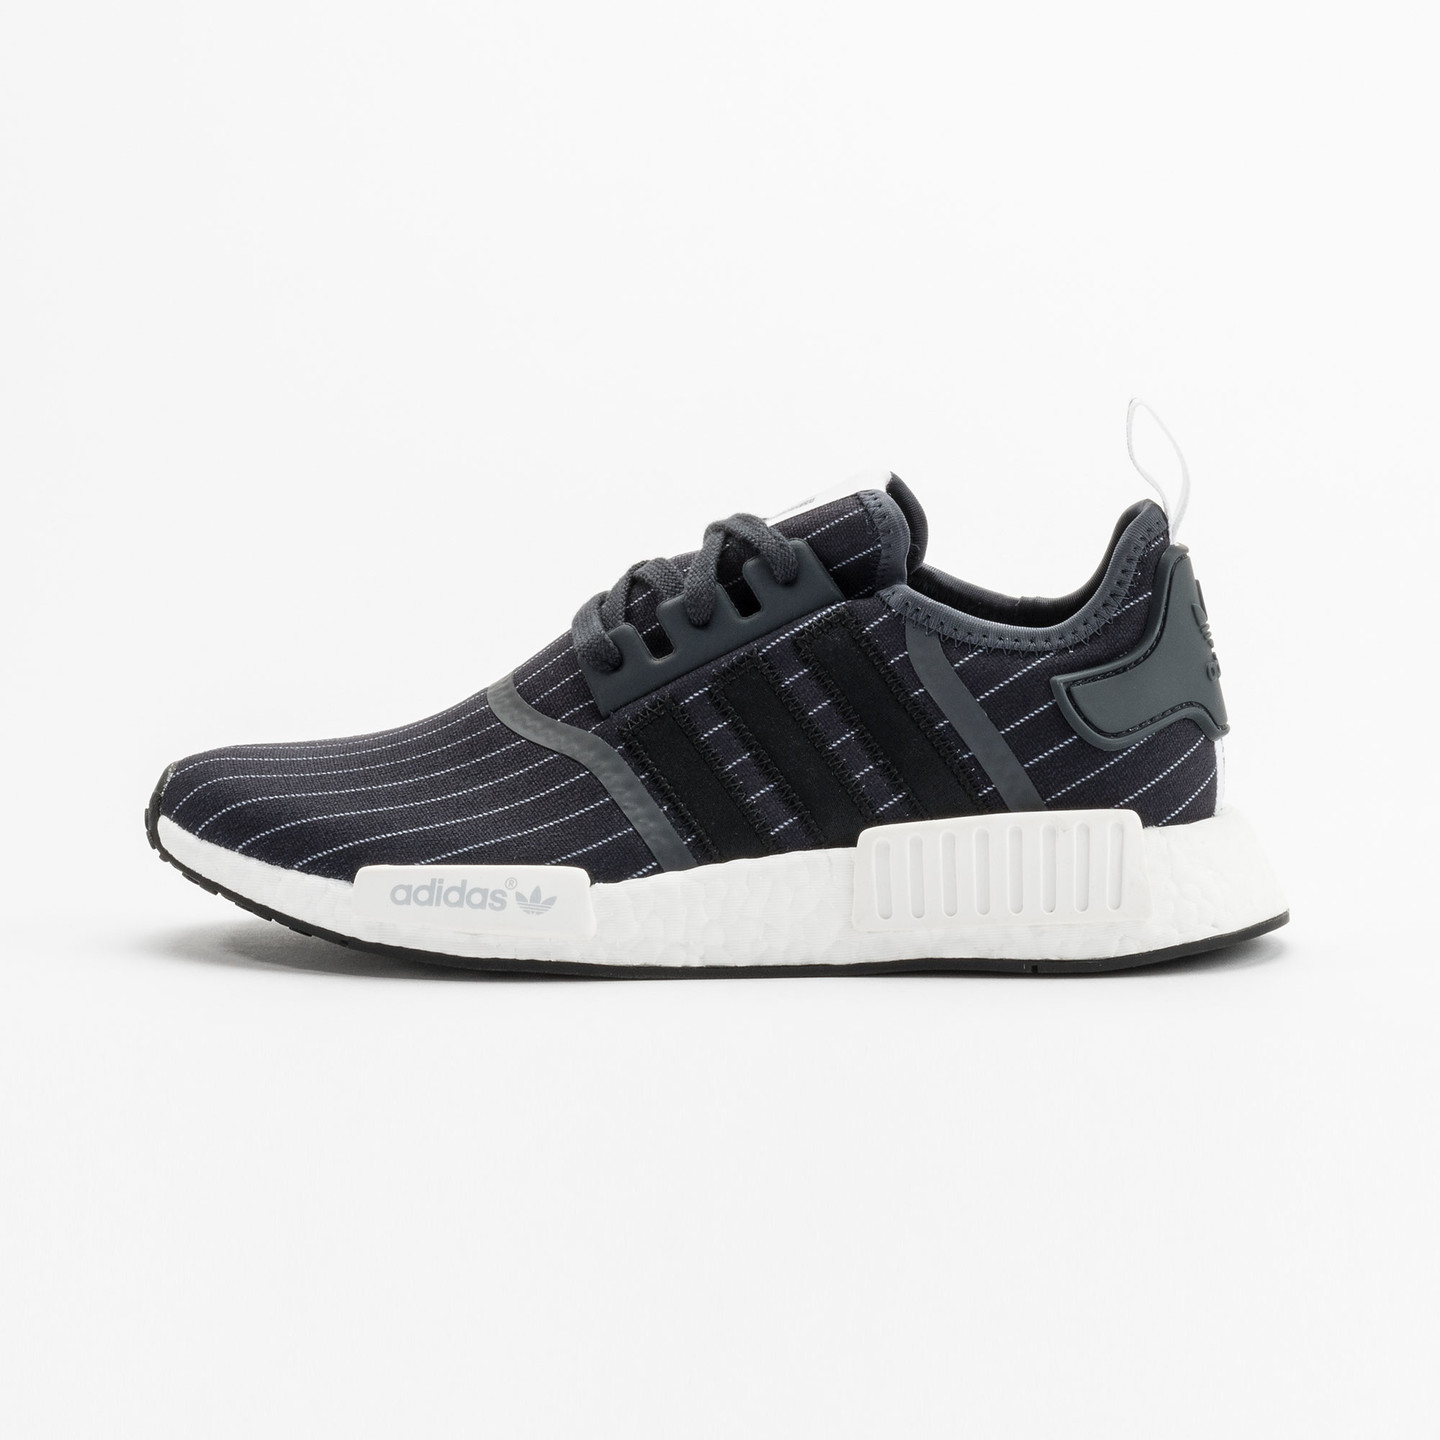 Adidas NMD x Bedwin & the Heartbreakers  Night Grey / Core Black / Ftwr White BB3124-43.33